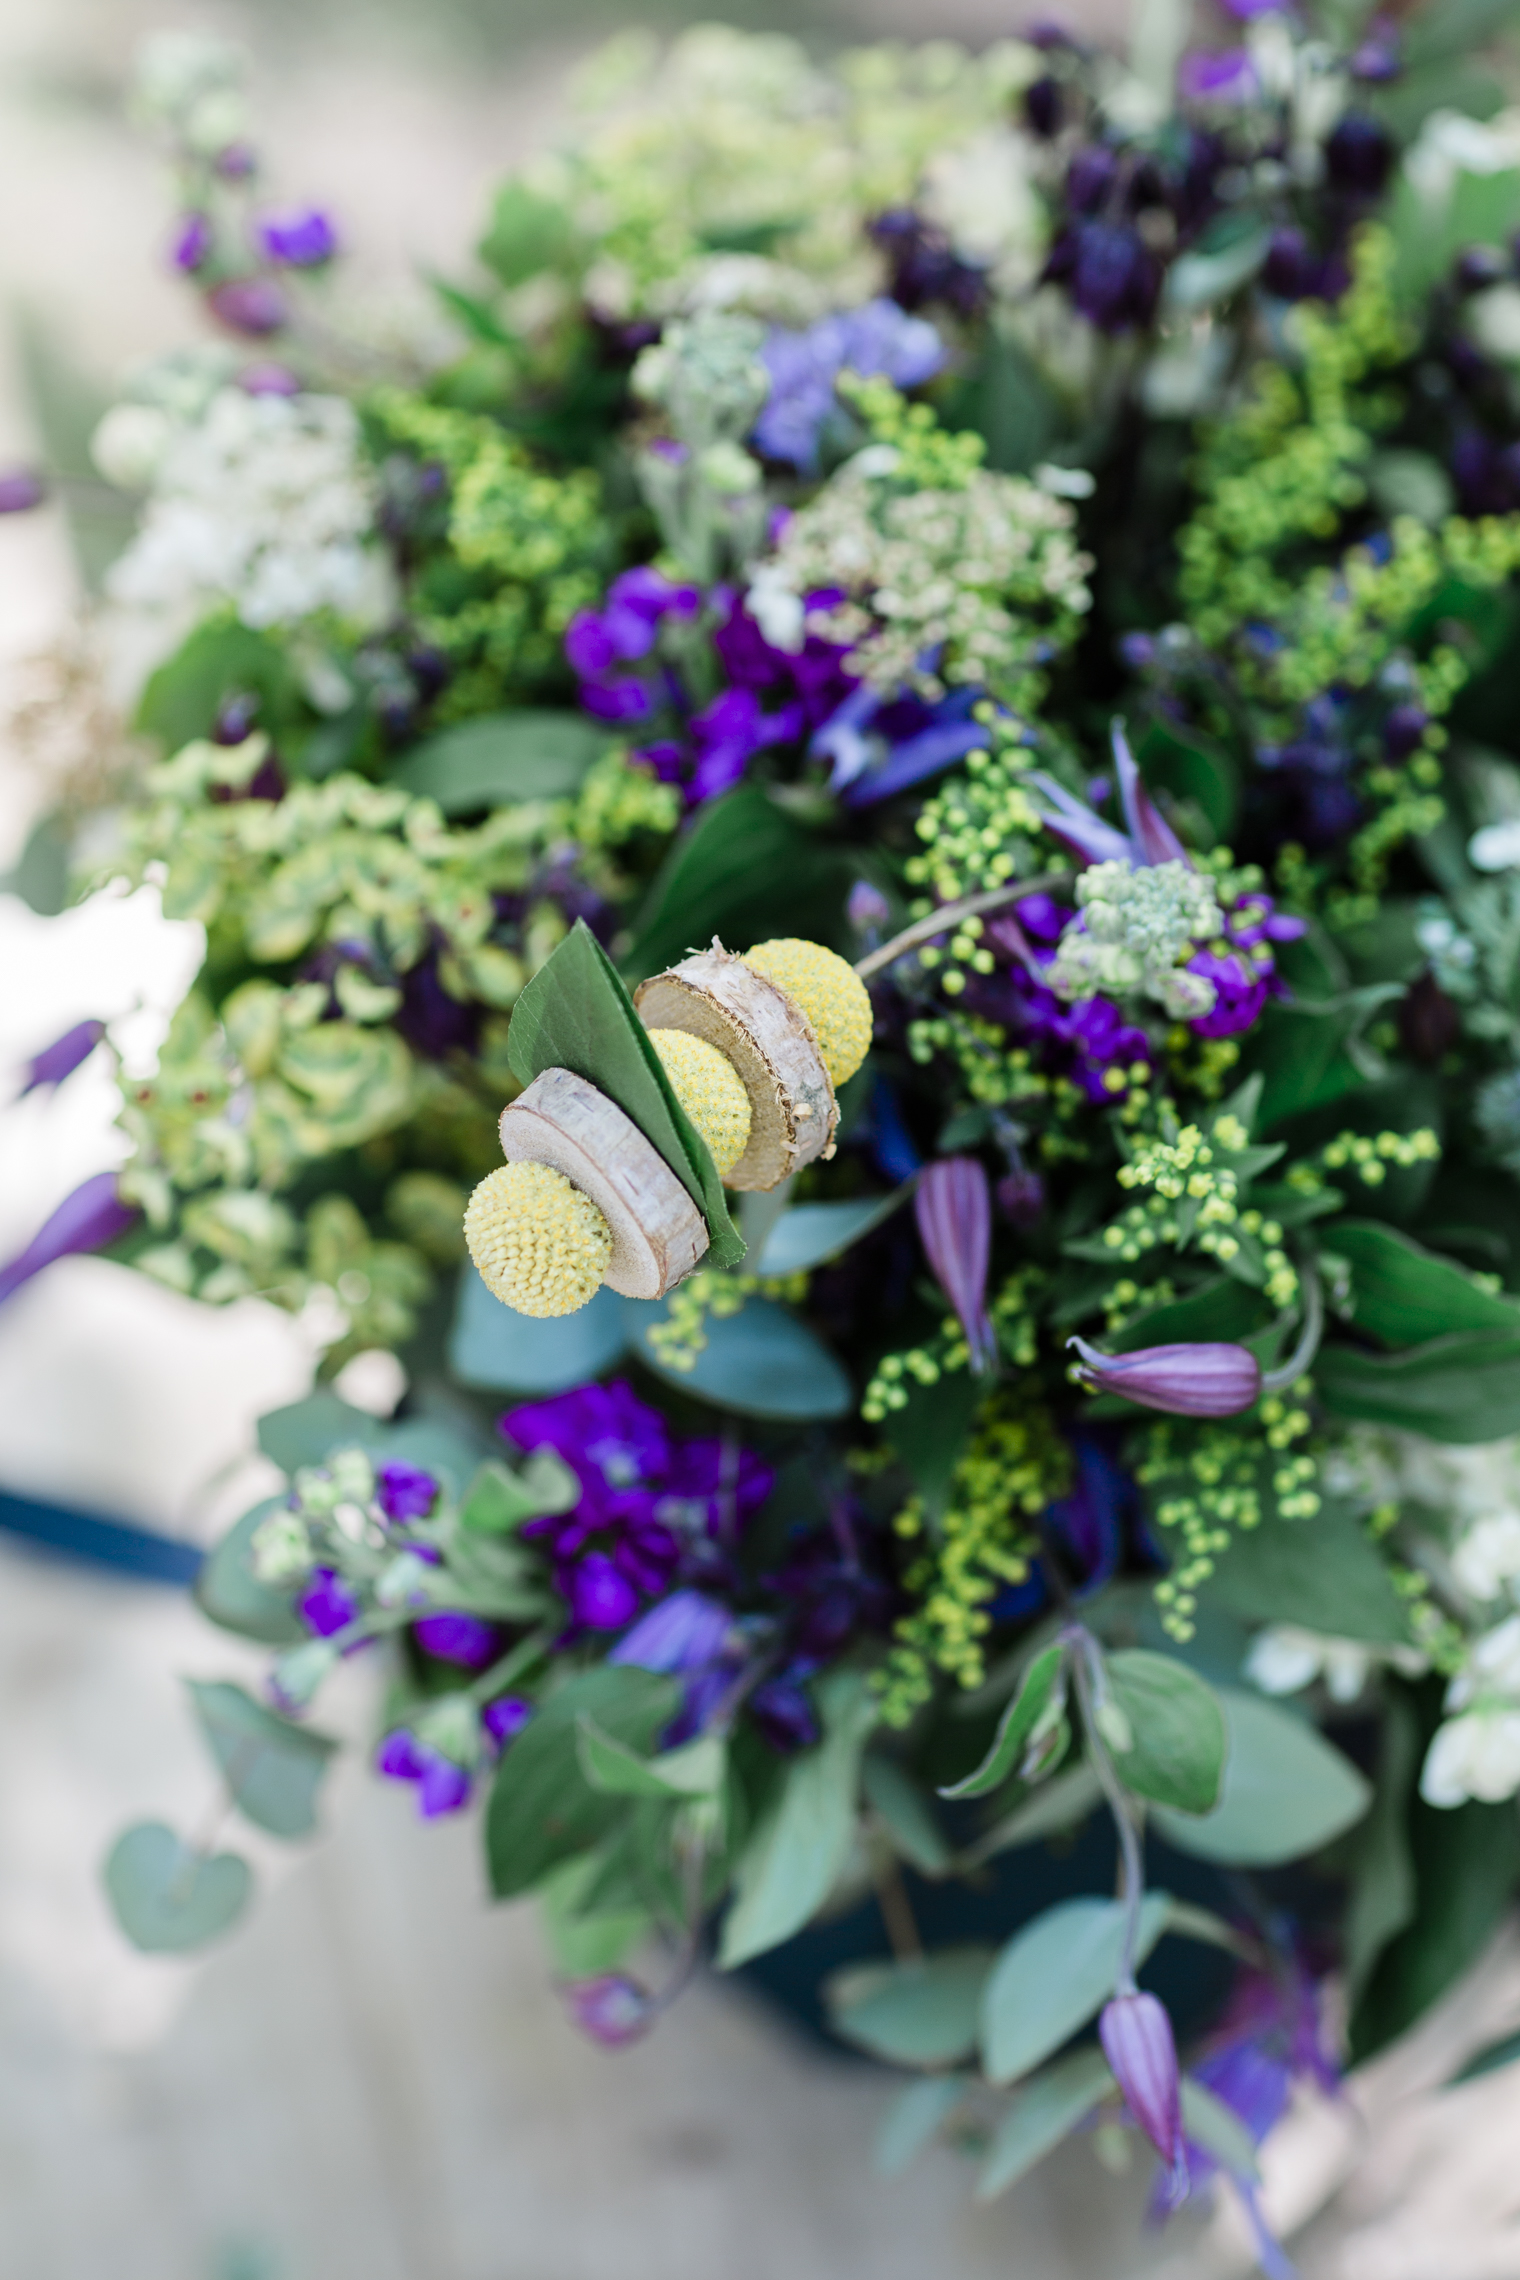 The McQueens design team have created a beautiful bouquet featuring bee-friendly flowers called Apis Mellifera (Latin for honey bee) to pay tribute to the honey bee.